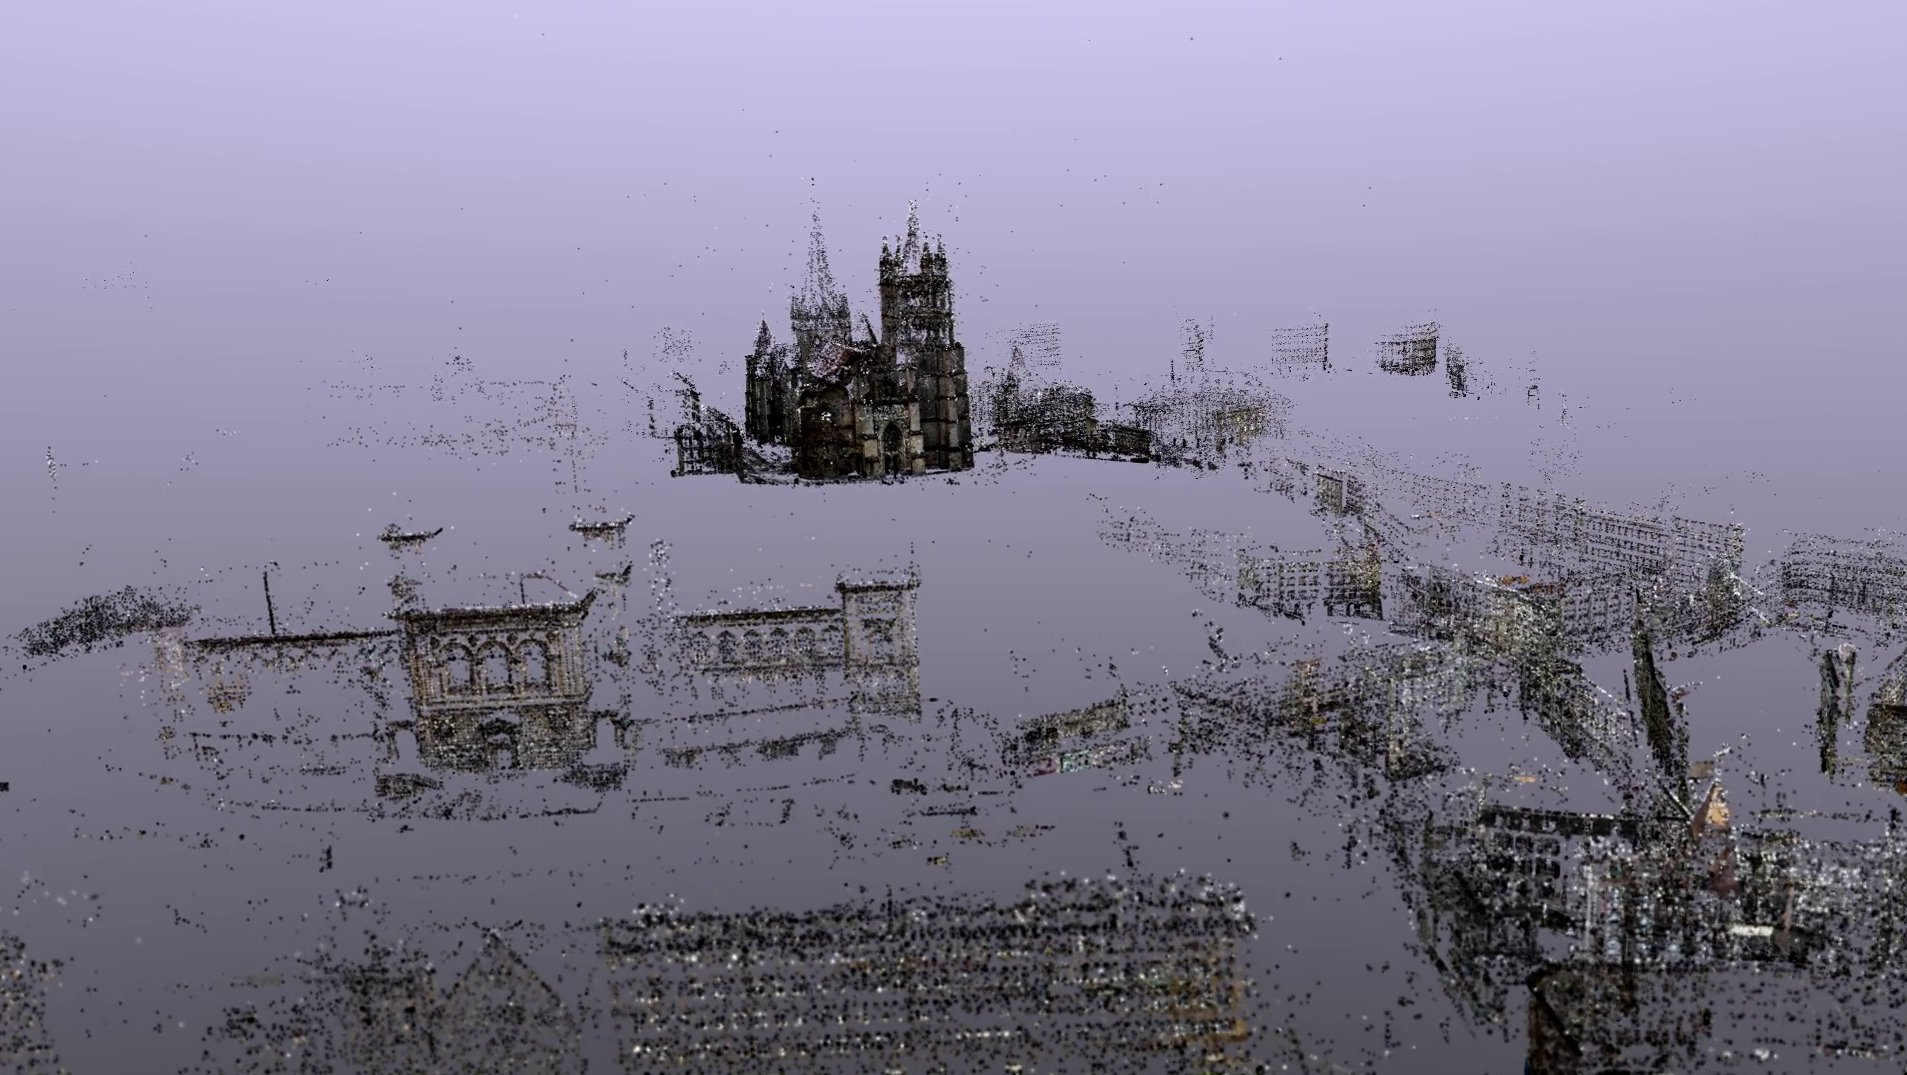 Point cloud rendering of the Lausanne dataset